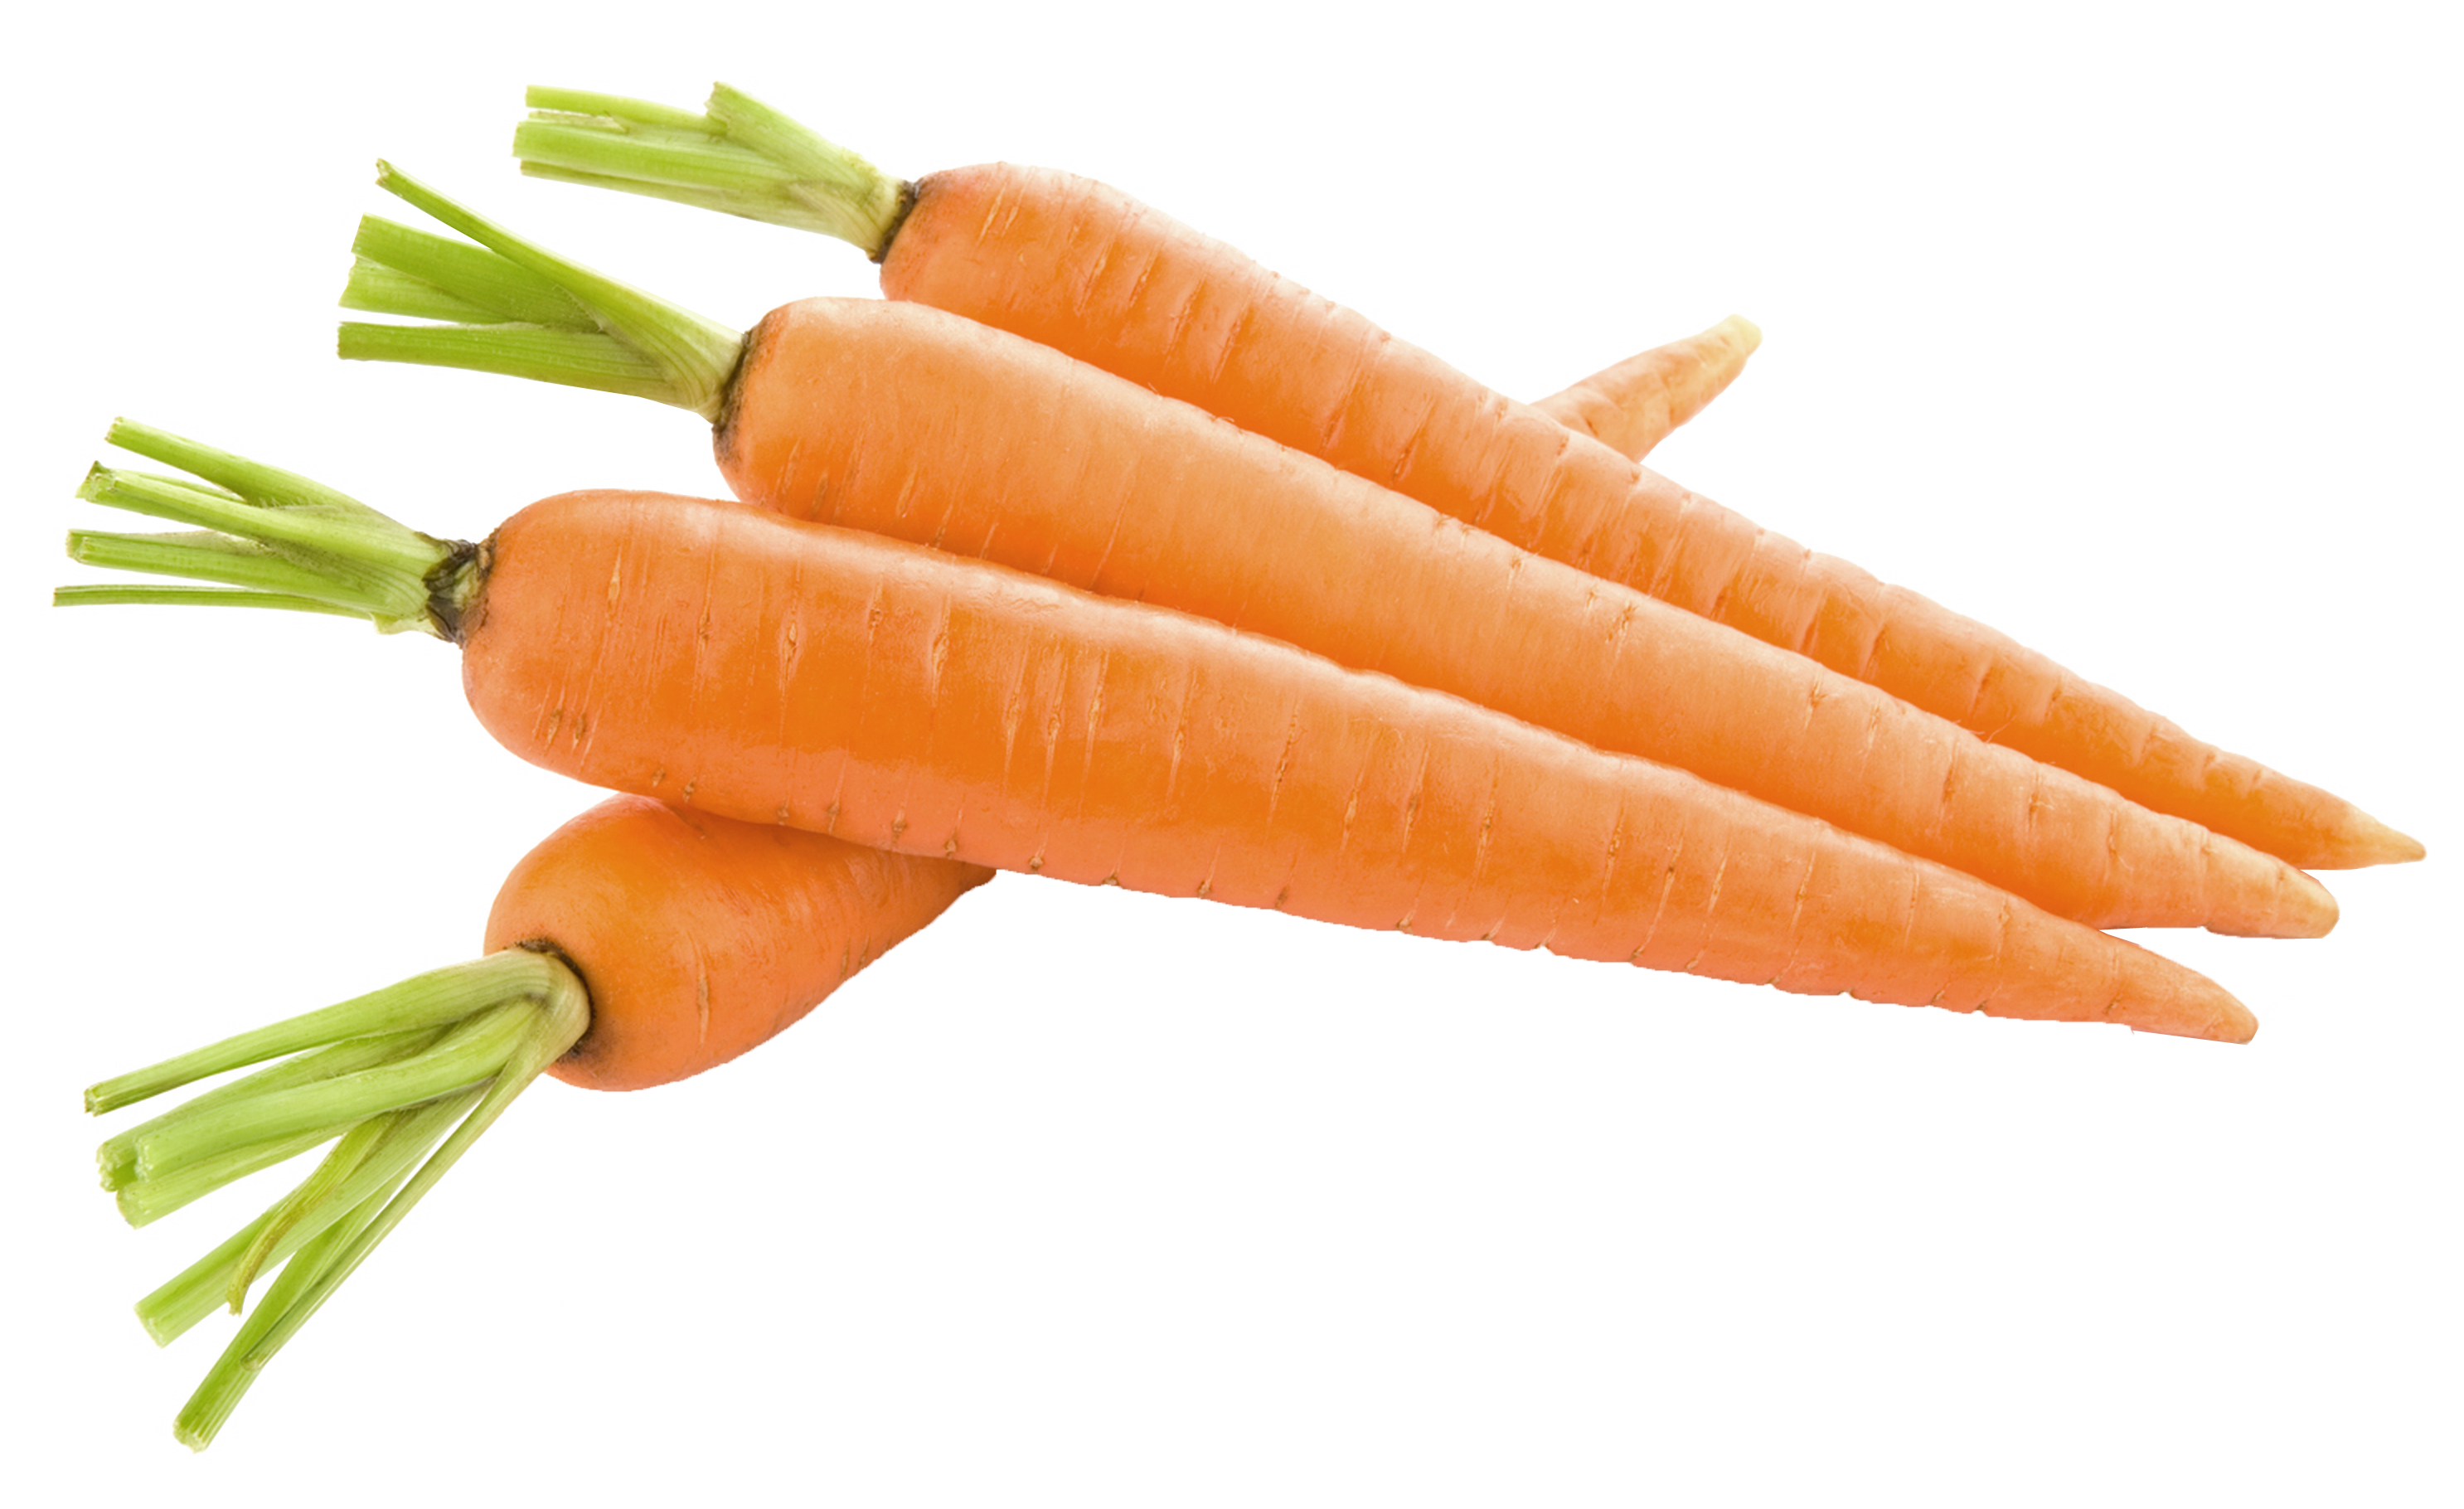 carrots png diced